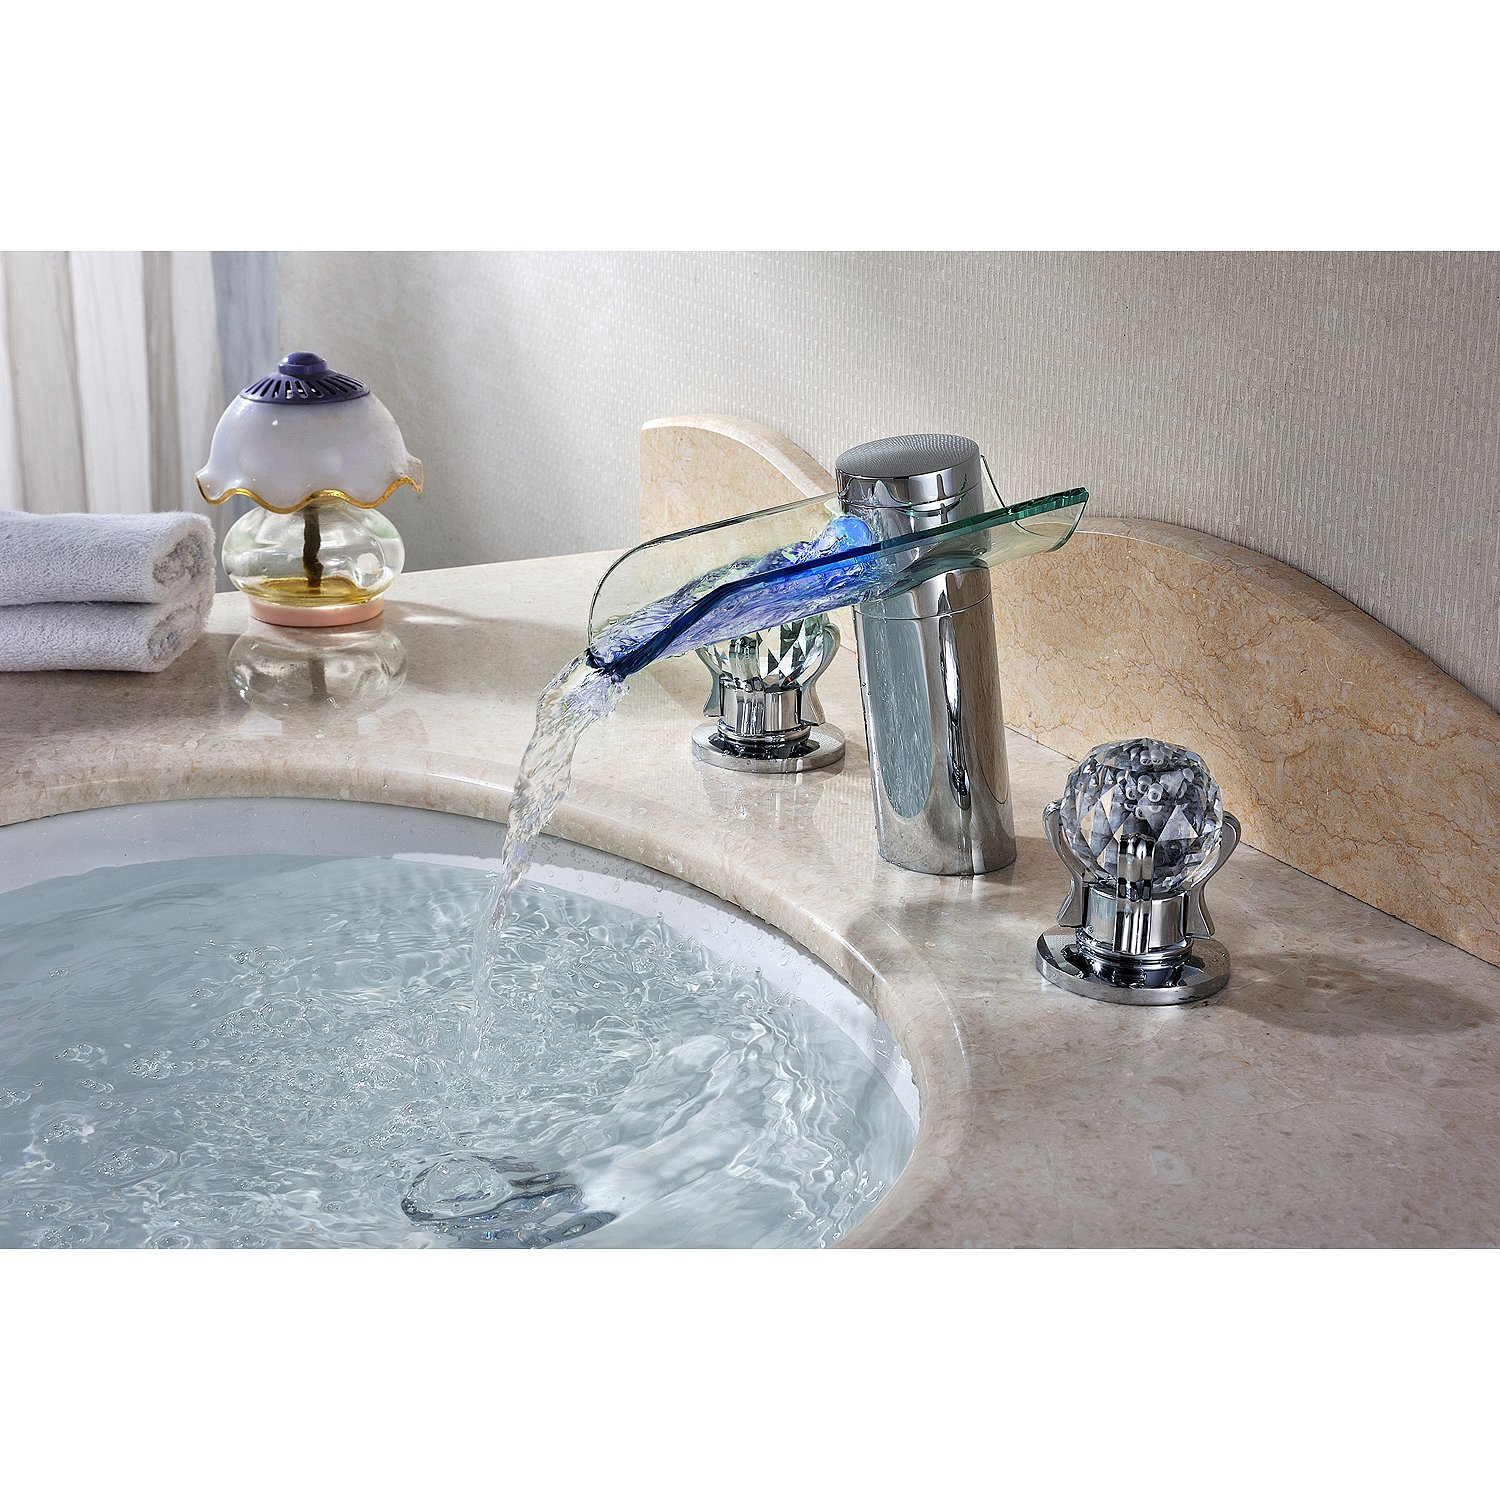 Bathroom Sink Faucet LED Color With Crystal Handles Beautiful ...